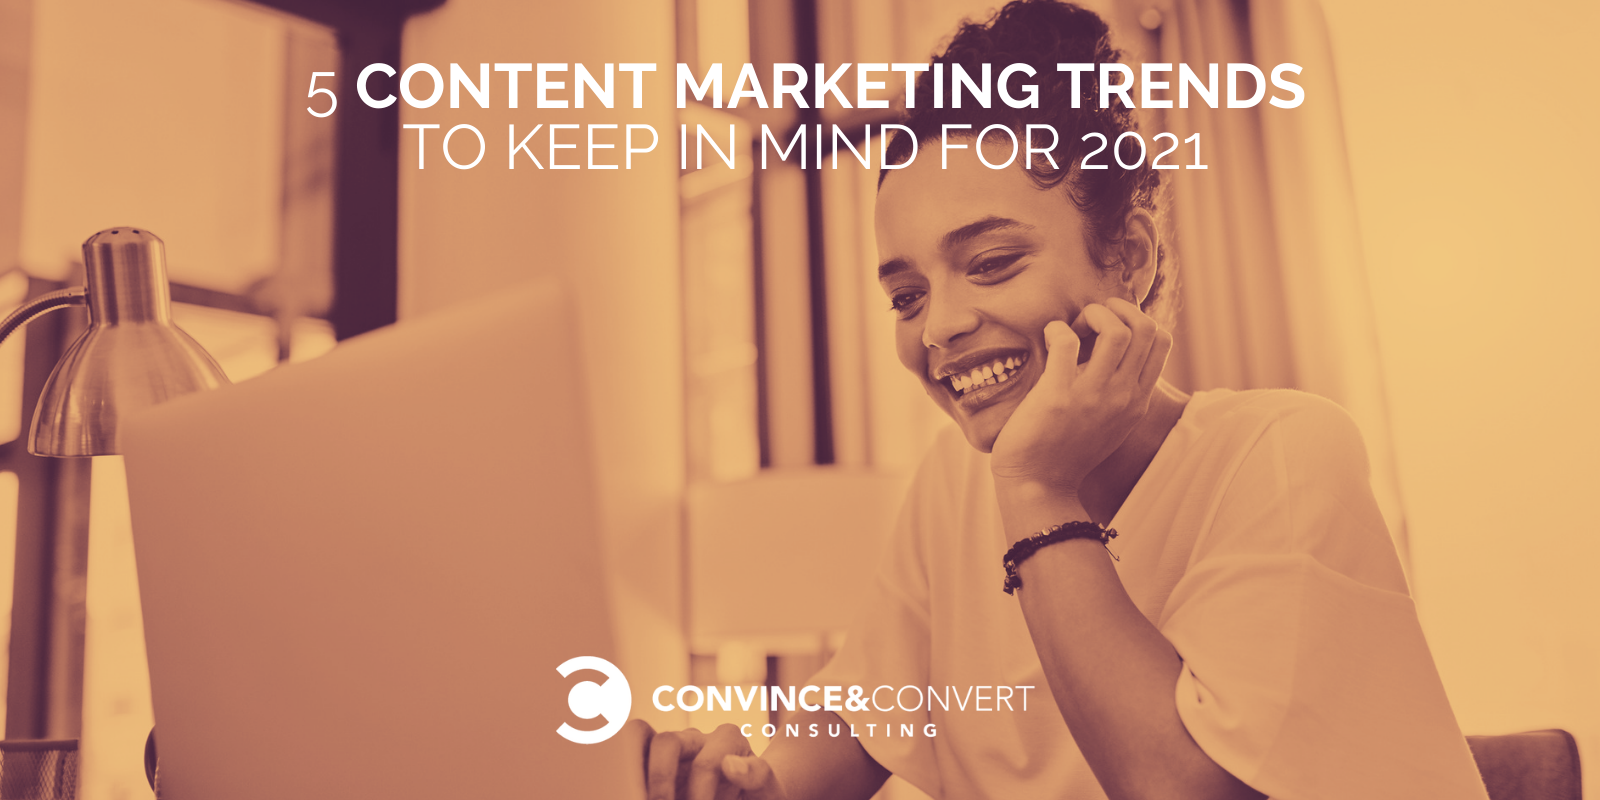 5 Content Marketing Trends to Keep in Mind for 2021 : Content Marketing Consulting and Social Media Strategy